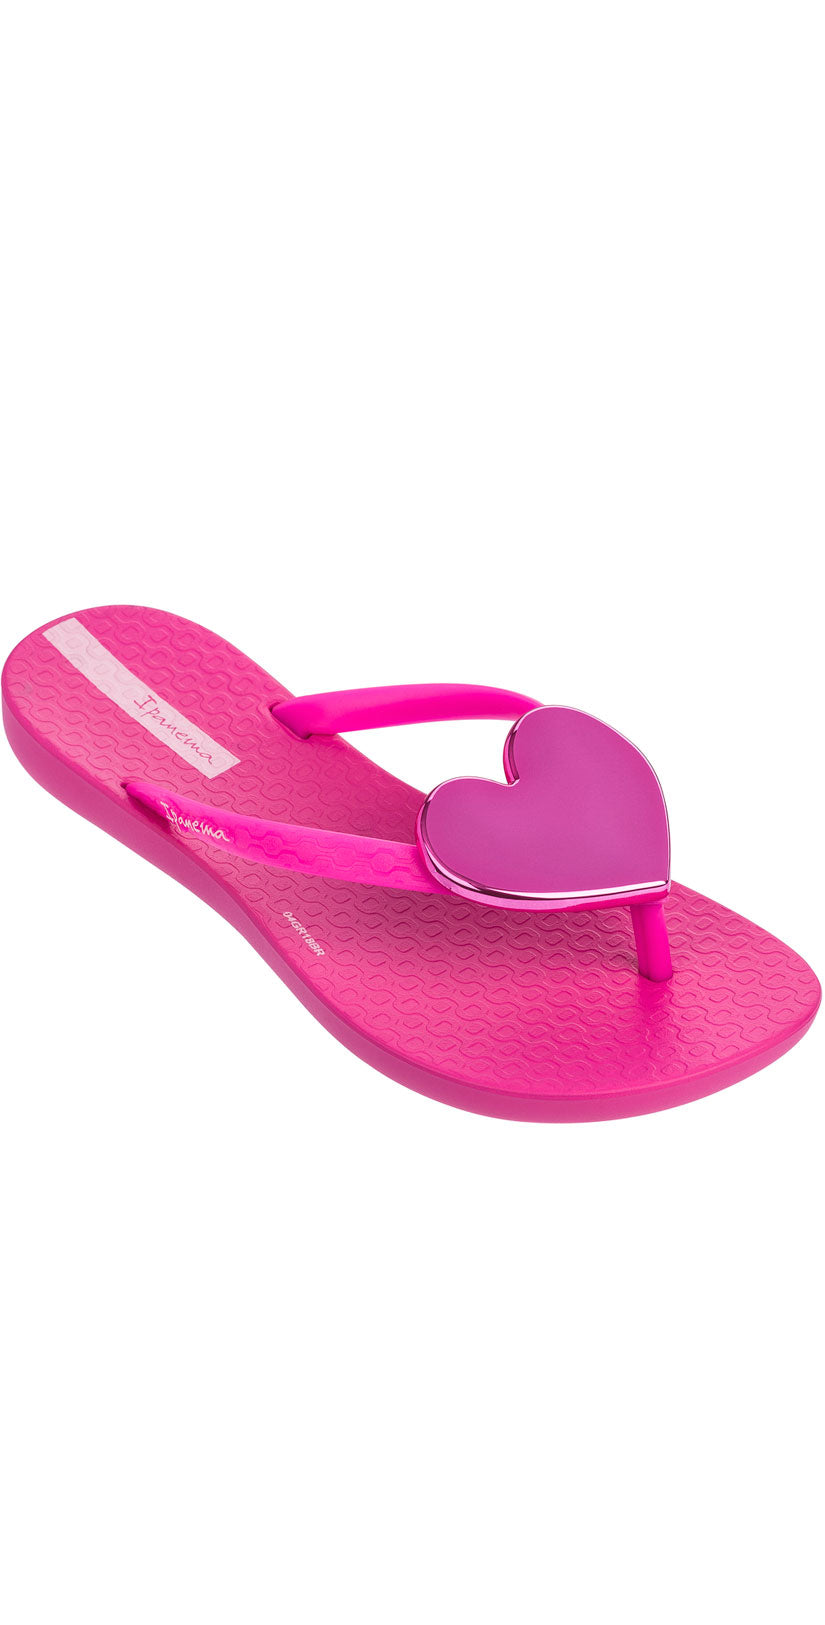 Ipanema Kids Wave Heart Flip Flop in Pink